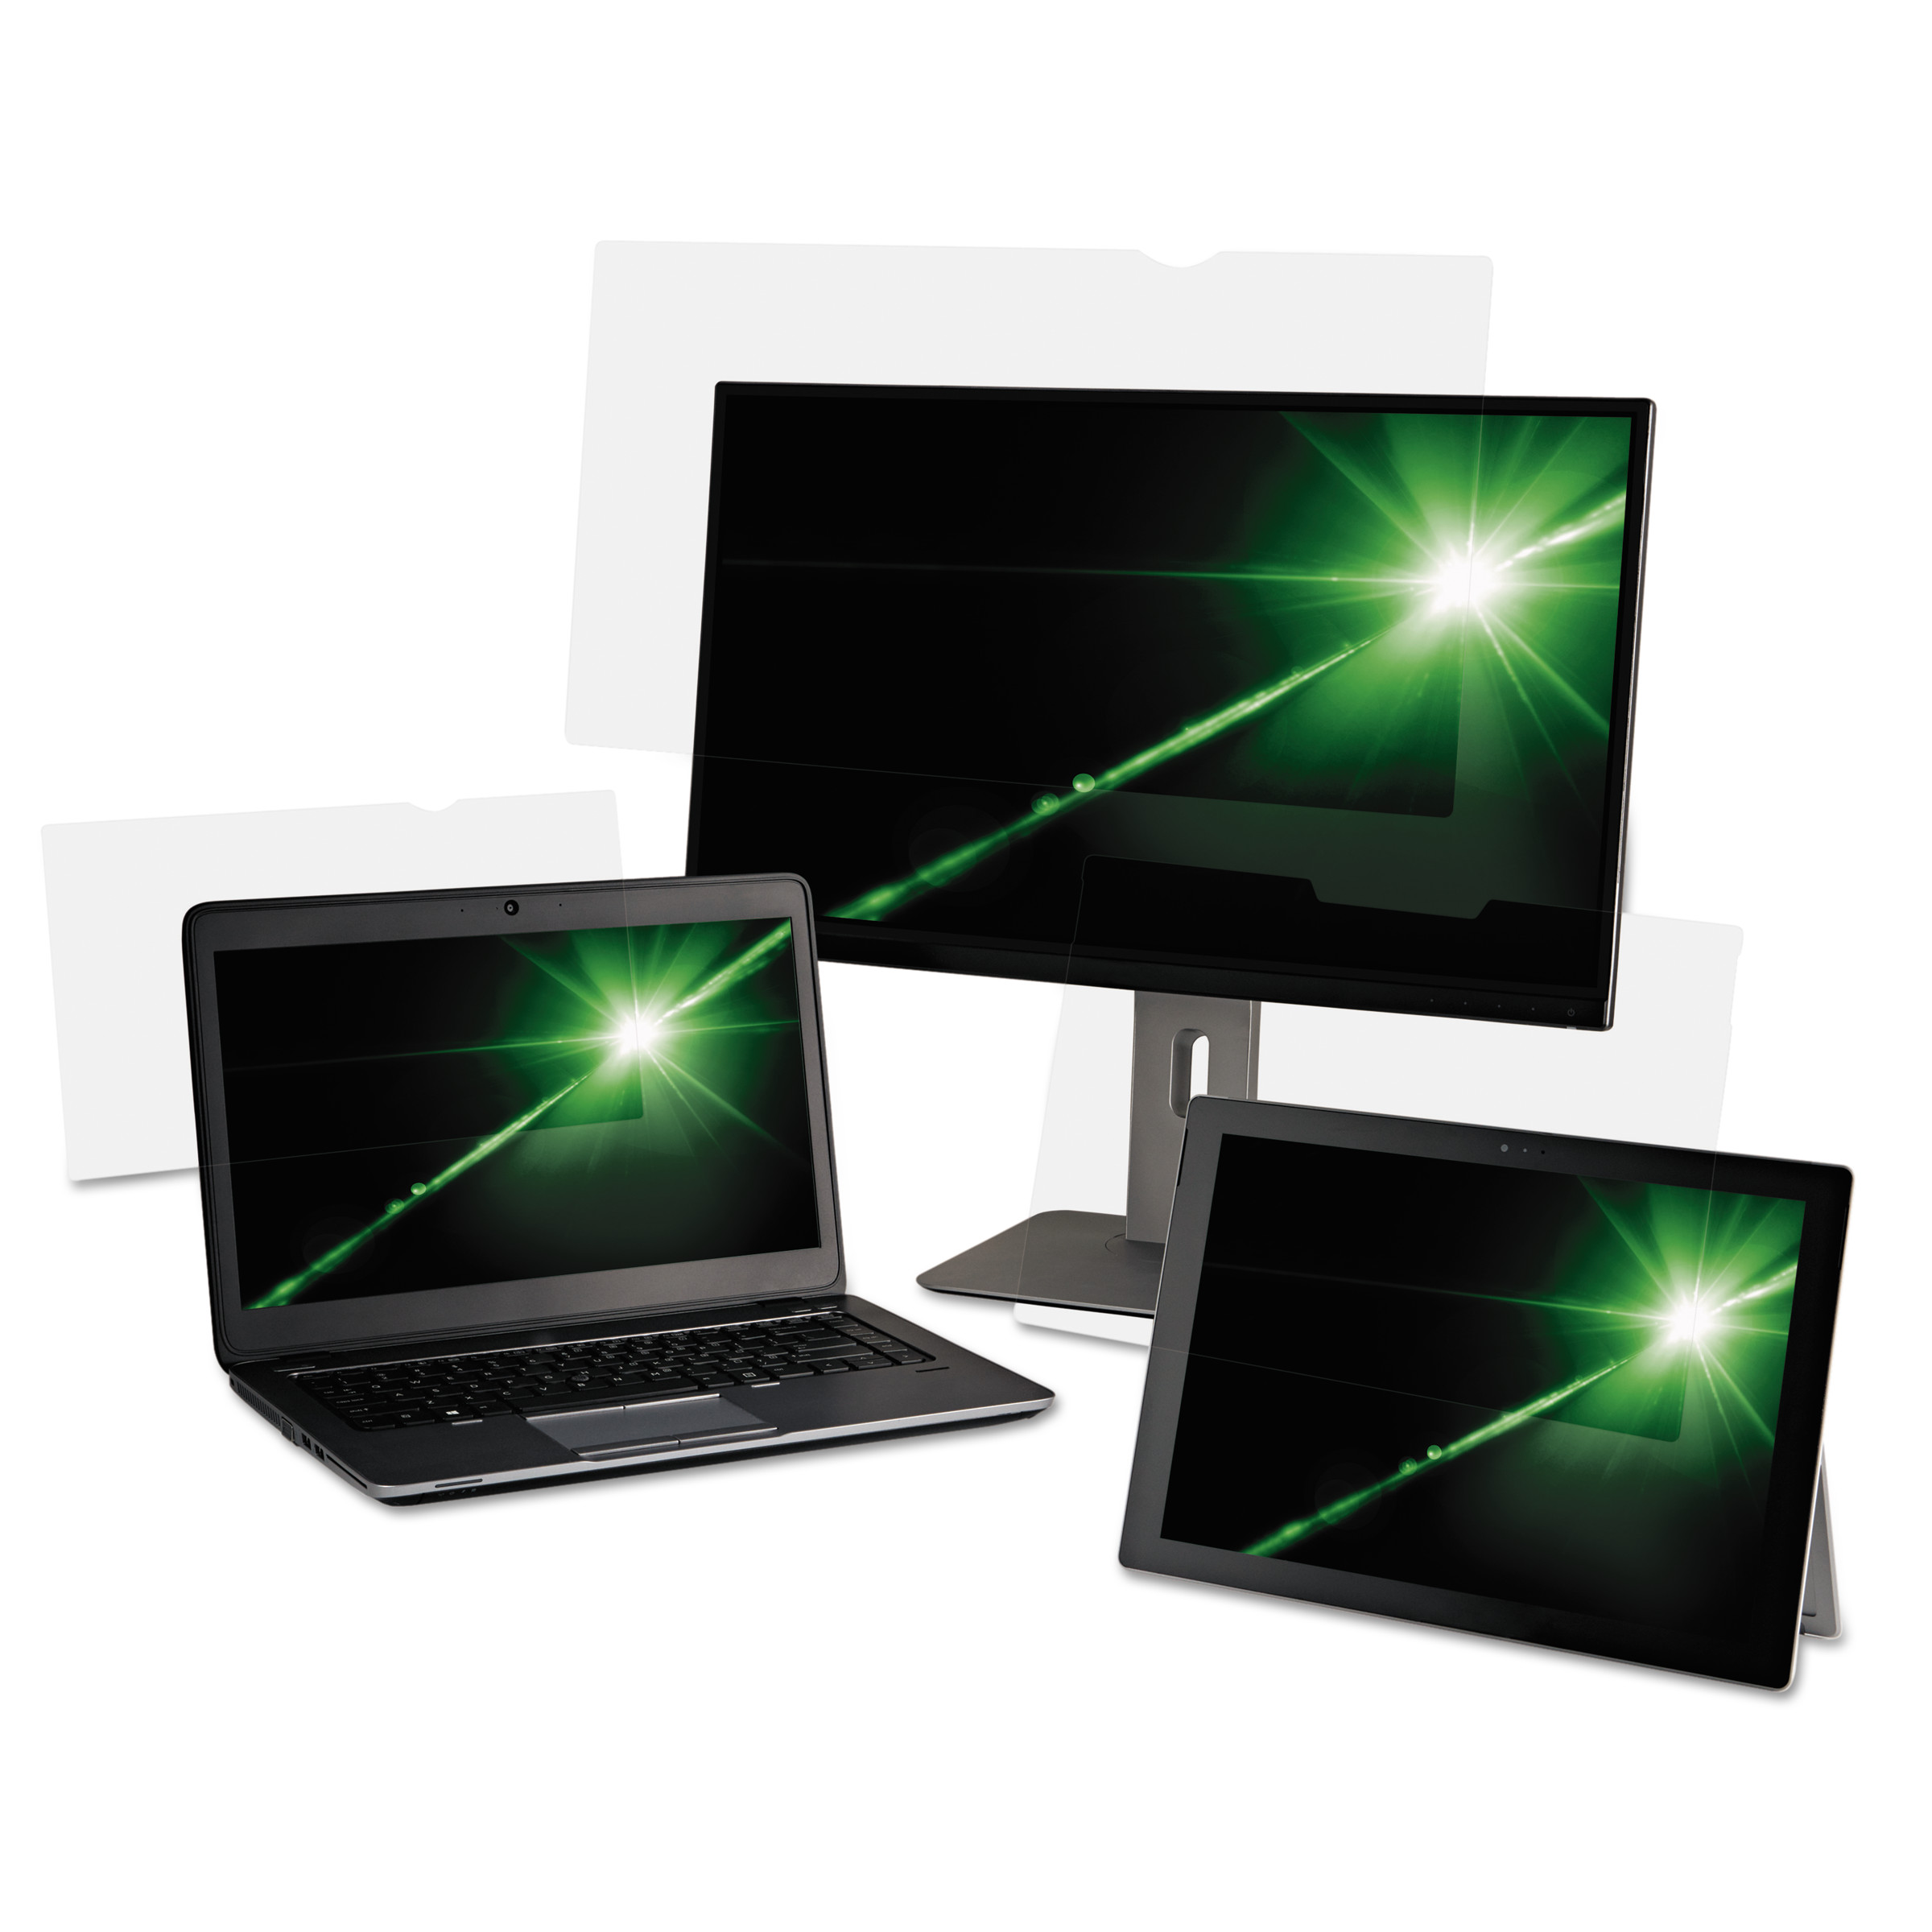 "3M Antiglare Flatscreen Frameless Monitor Filters for 14"" Widescreen Notebook"